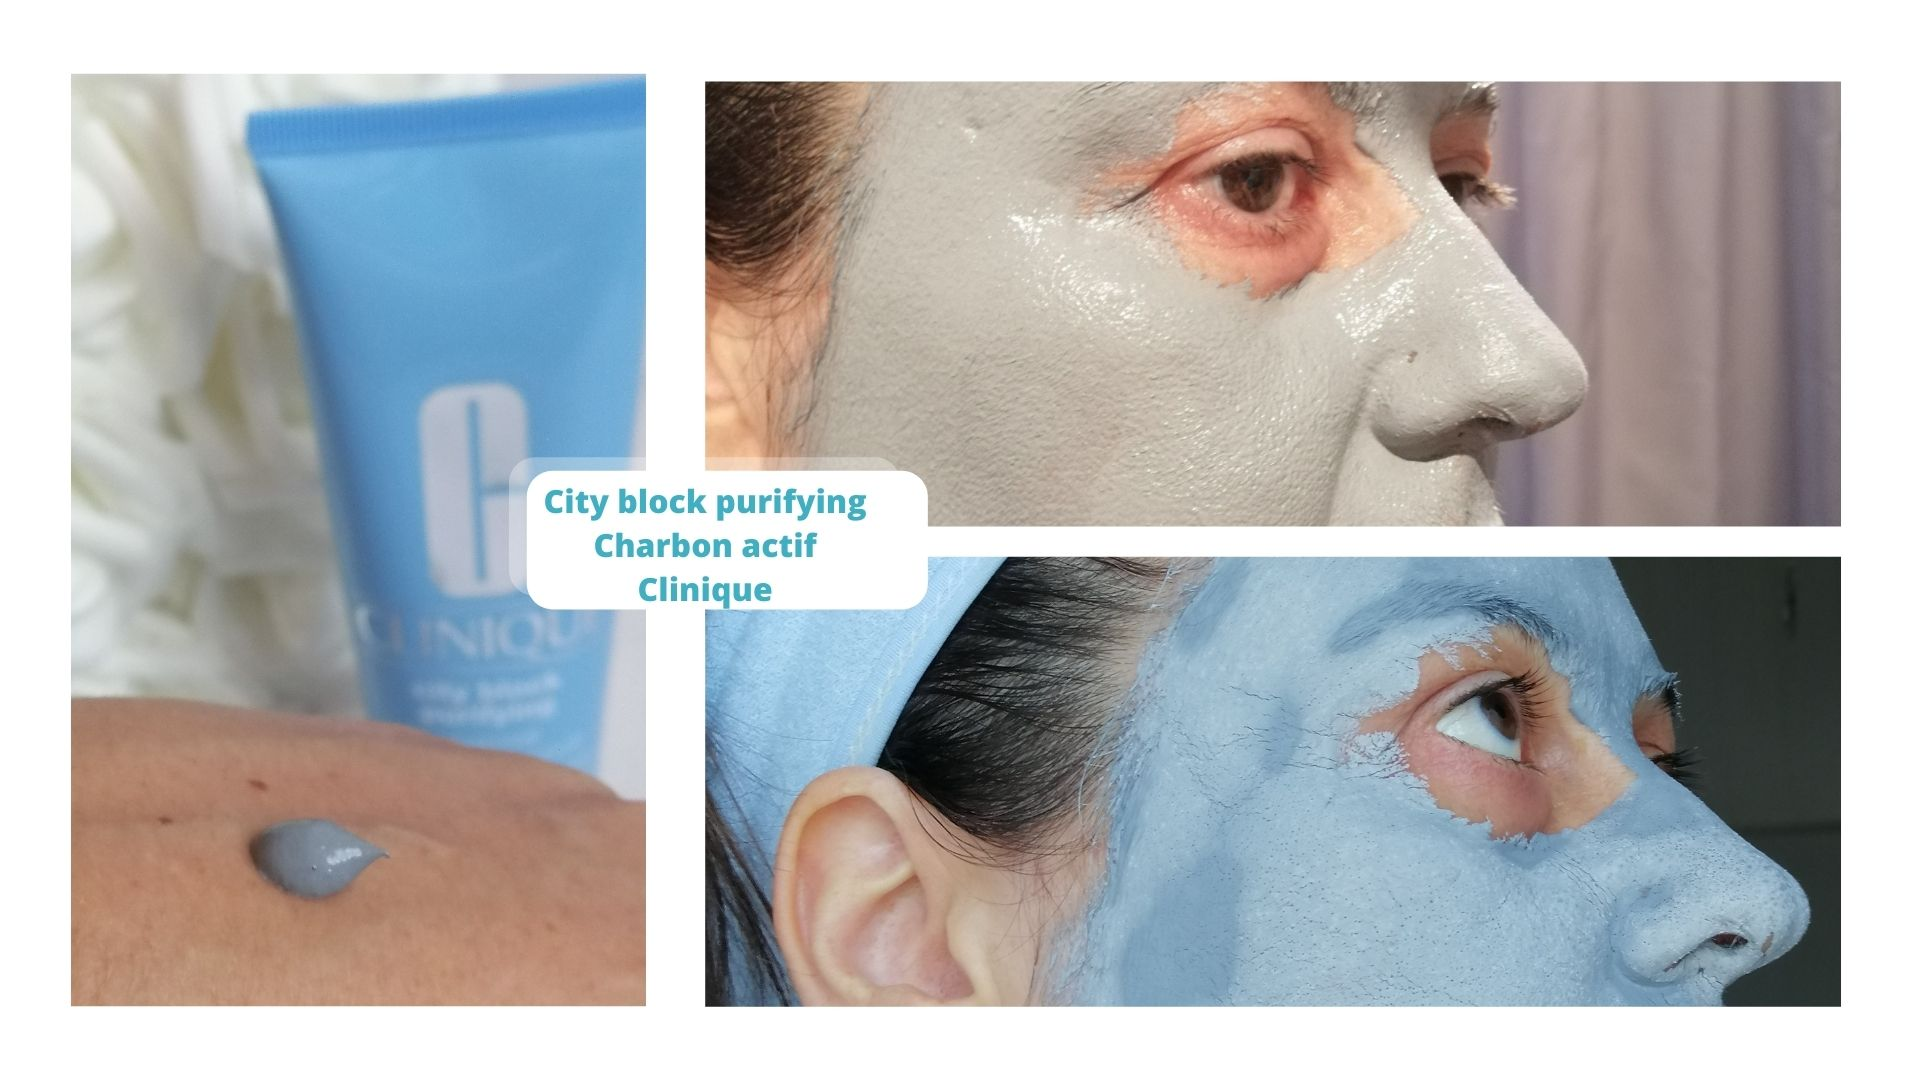 City block purifying charbon actif clinique